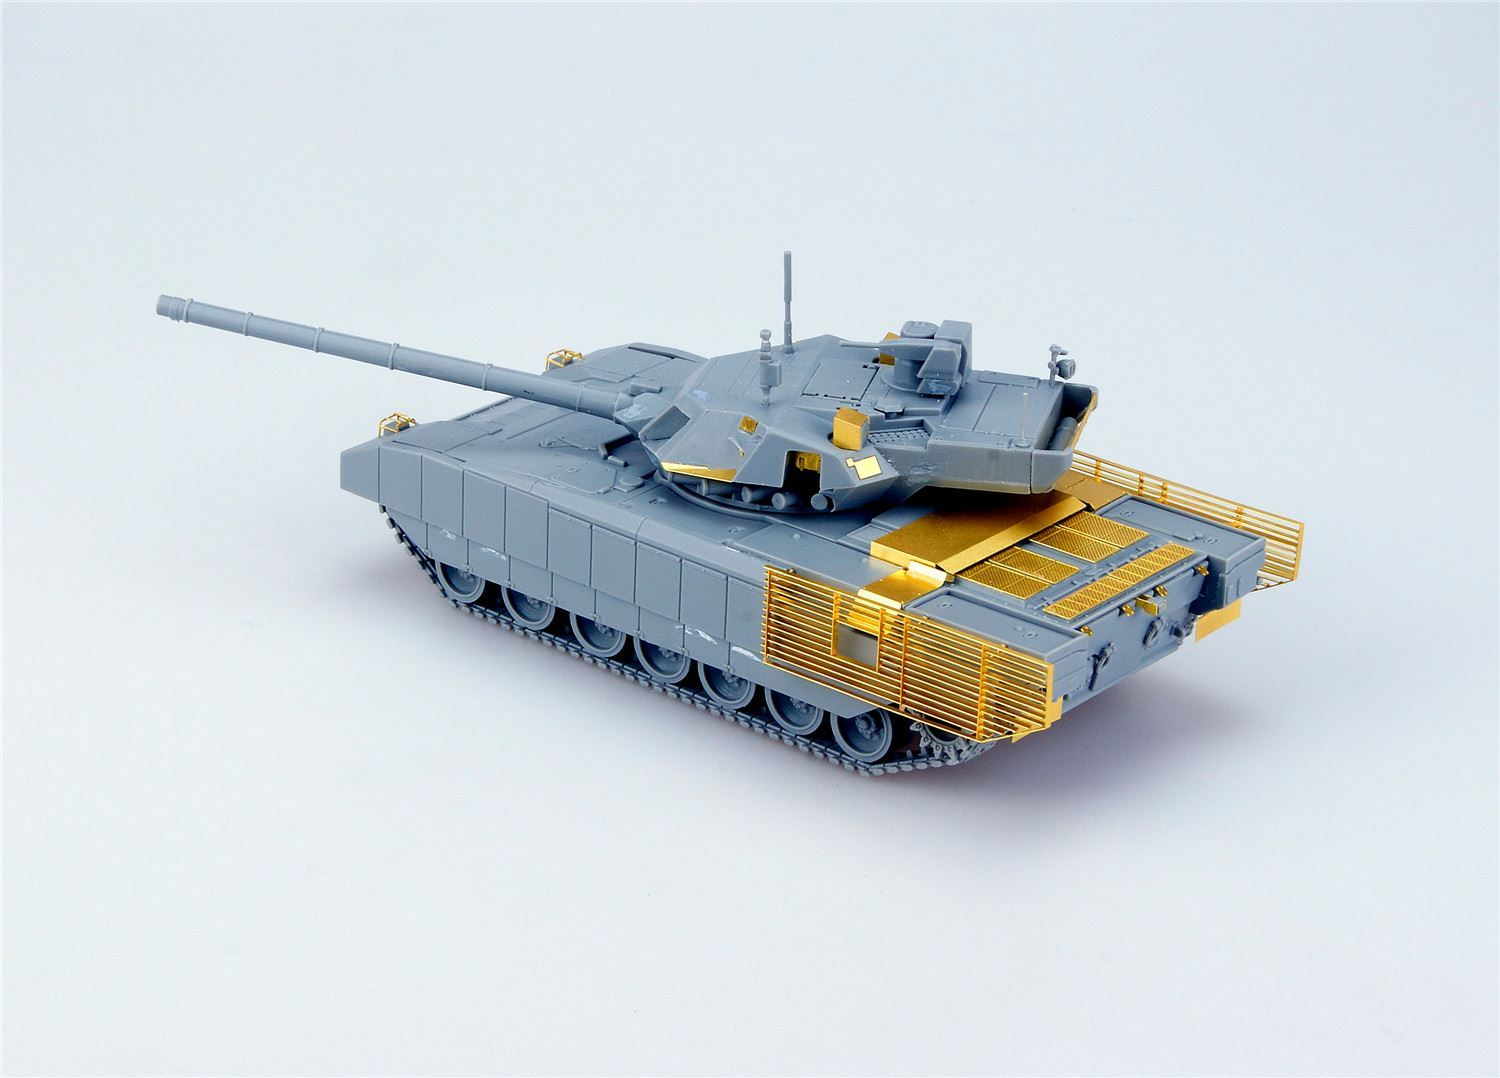 0002167_russian-t-14-armata-main-battle-